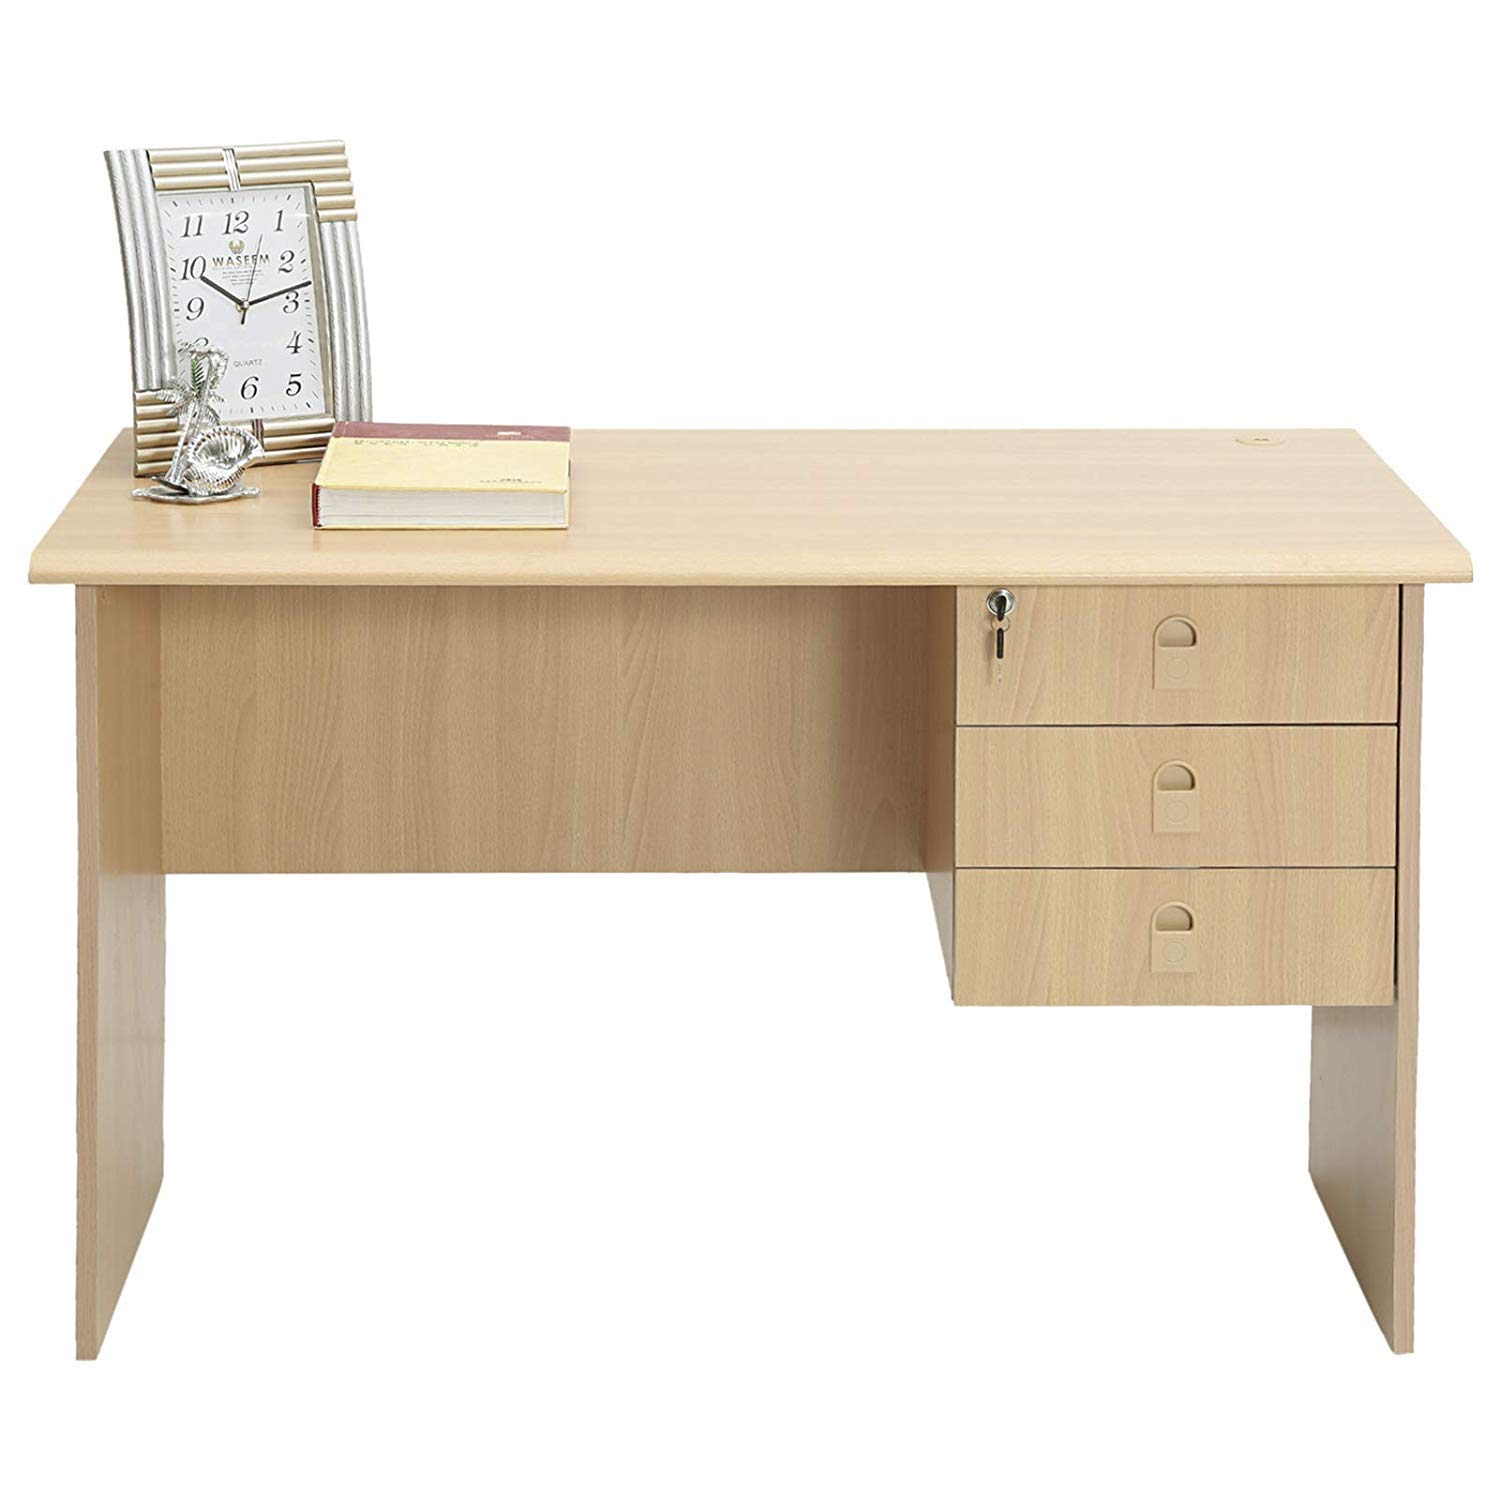 AFT Office Table with 1 Side Drawer, Beige - 140 x 50 x 75 ...